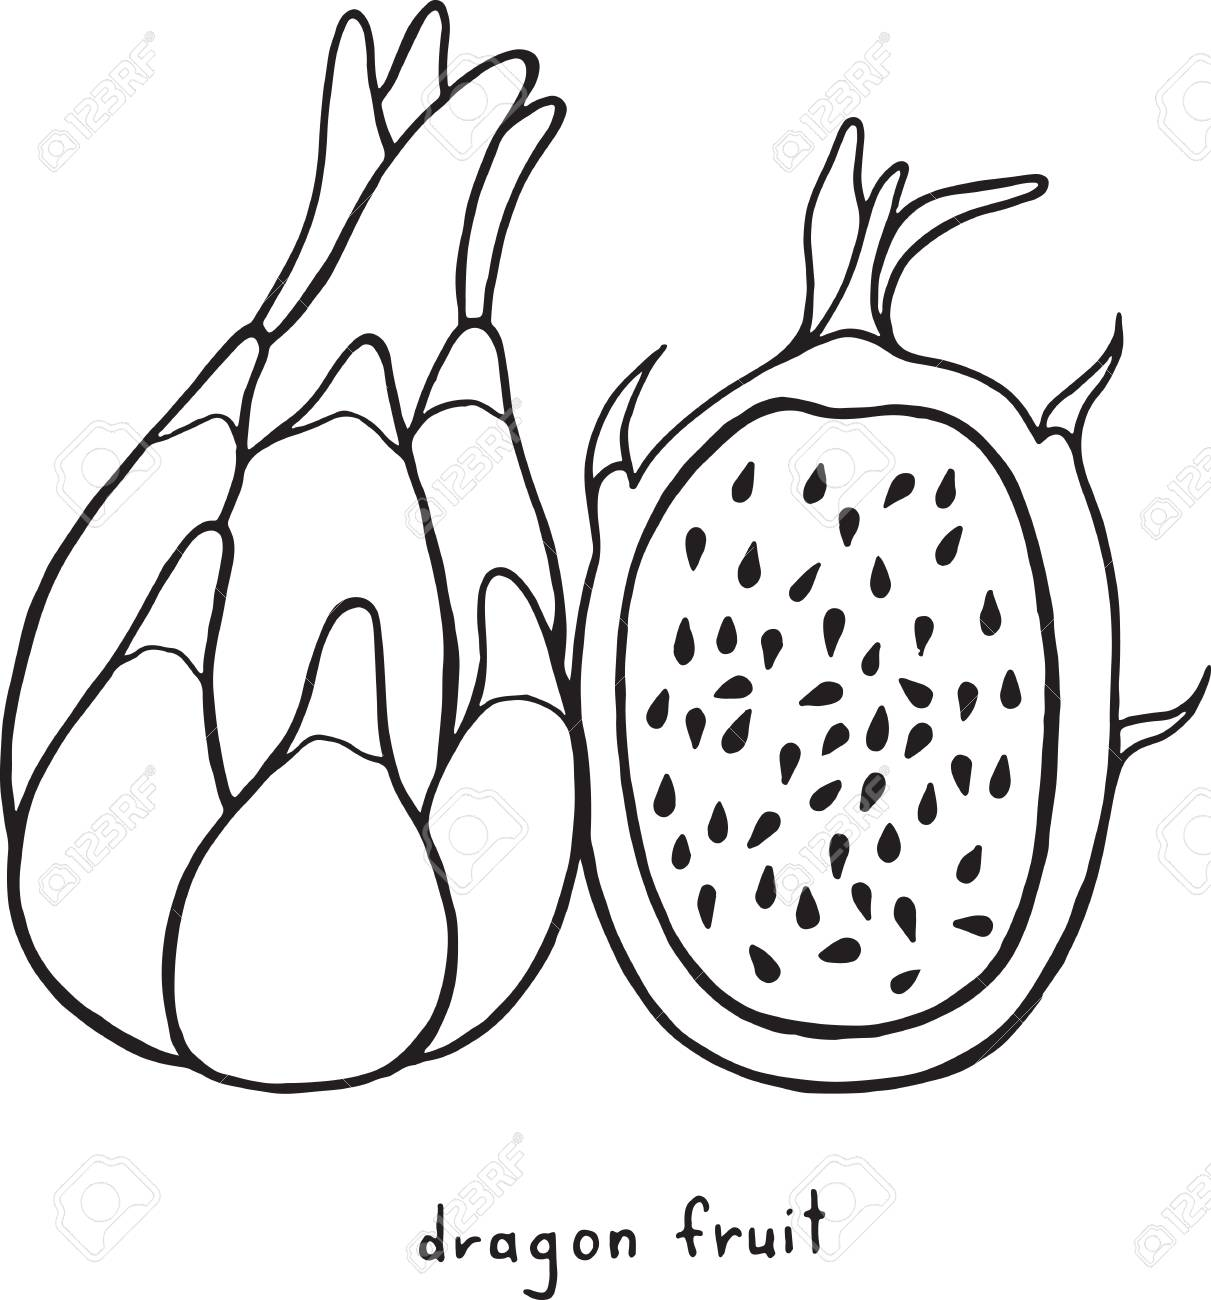 Dragon fruit coloring page graphic vector black and white art for coloring books for adults